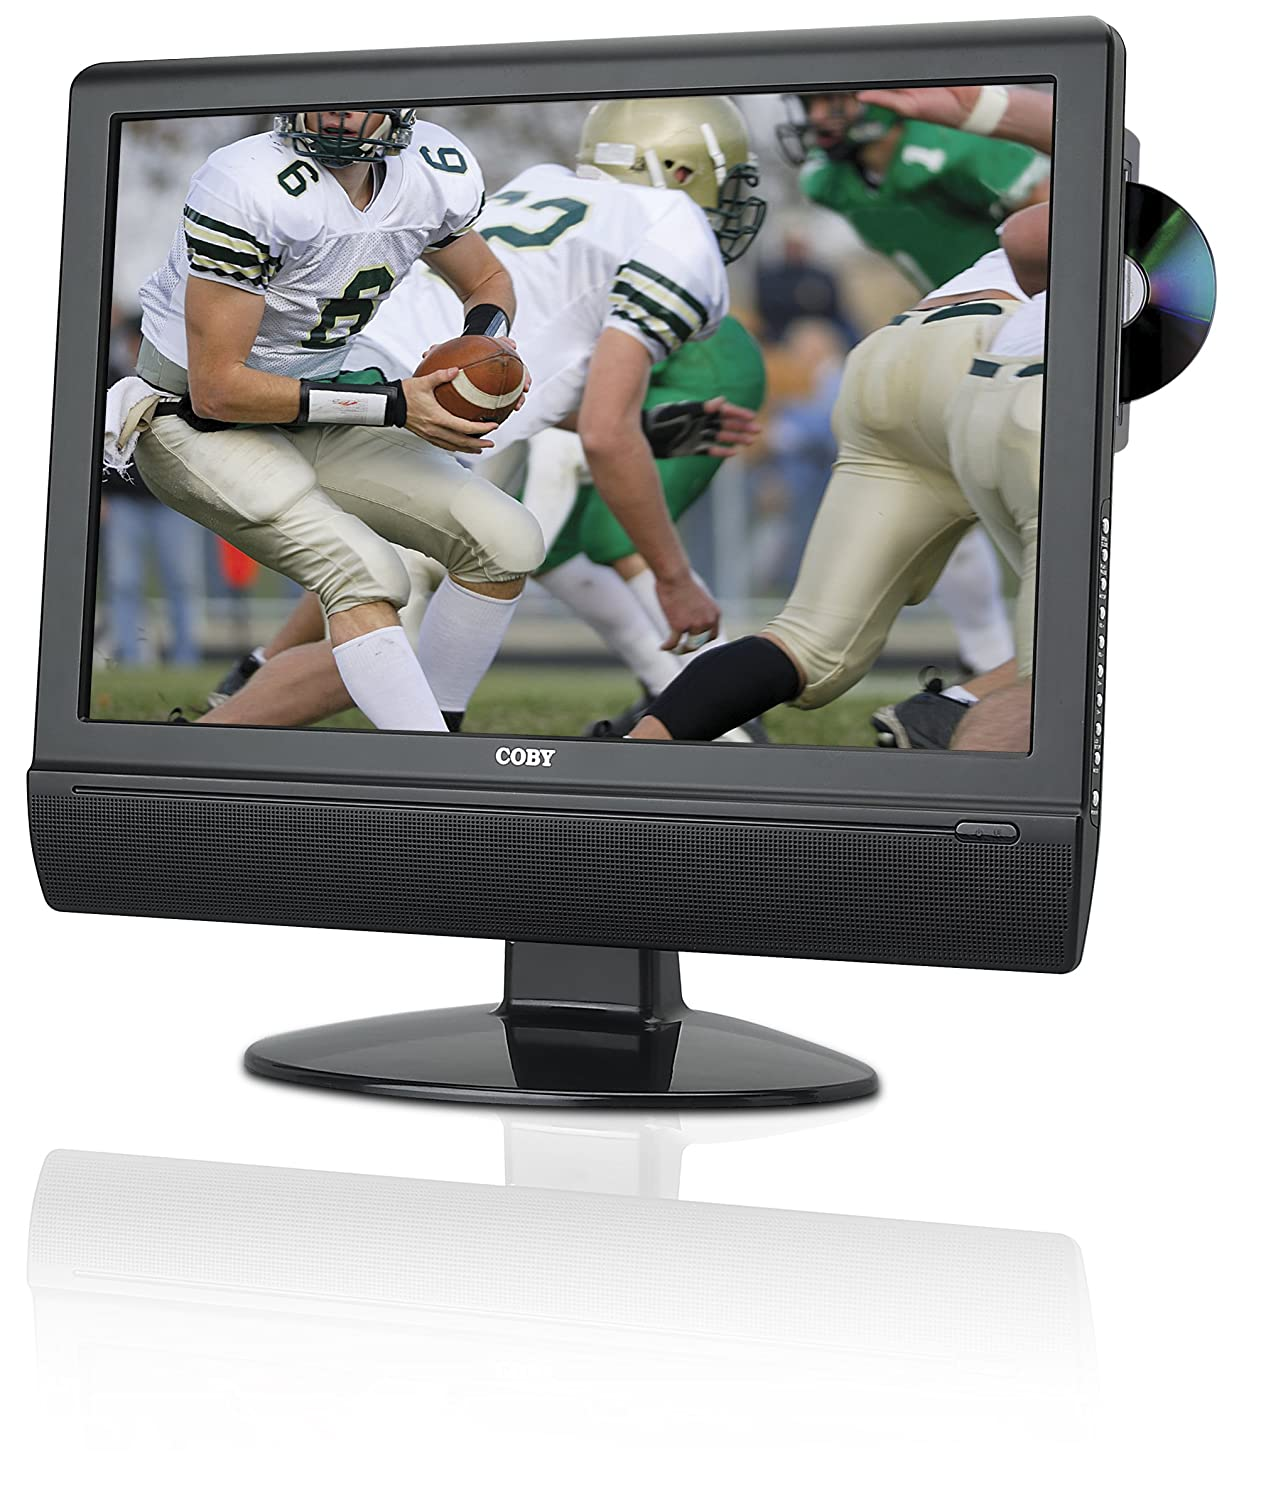 Amazon.com: Coby TFDVD1973 19-Inch Widescreen LCD HDTV/Monitor with  Slot-Loading DVD Player (Black): Electronics